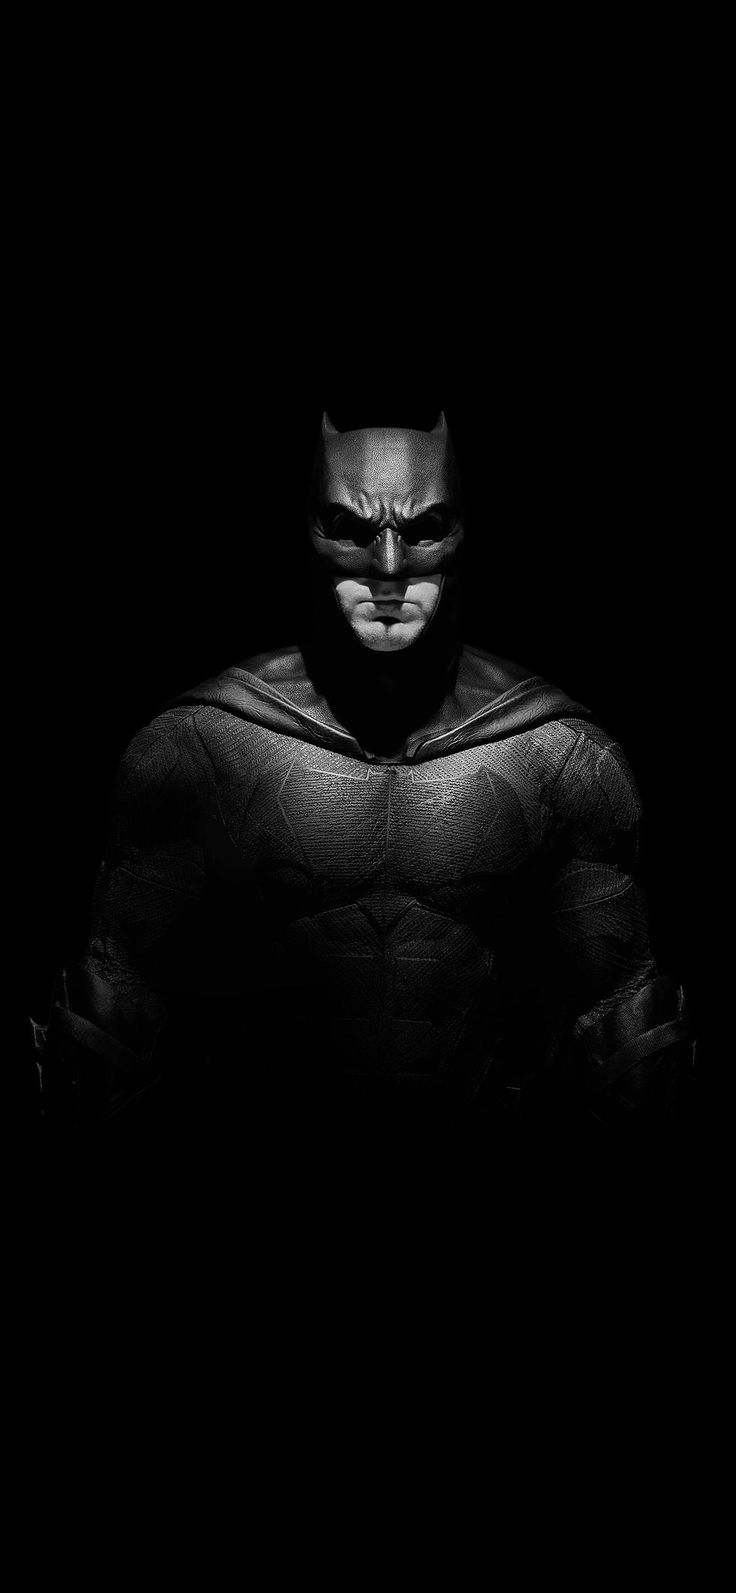 Batman Wallpaper 4k Iphone 3d Wallpapers Fashionlife Fashionstylist Fashiondiaries Fashionlove Weddingvideo Batman Wallpaper Dark Phone Wallpapers Batman